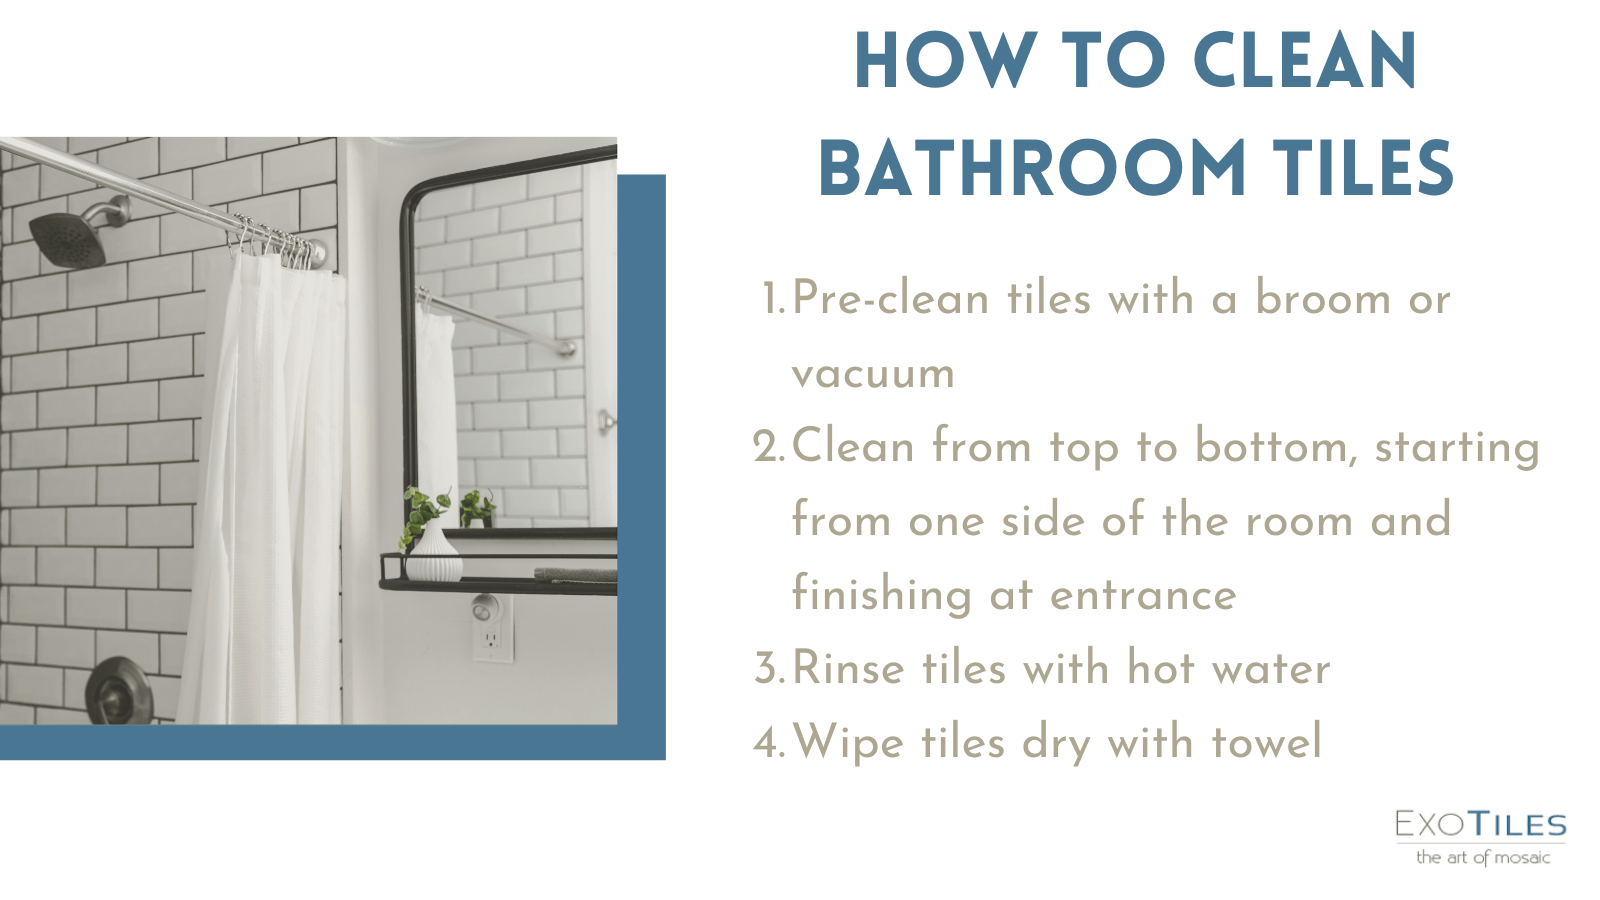 How to clean bathroom tiles infographic